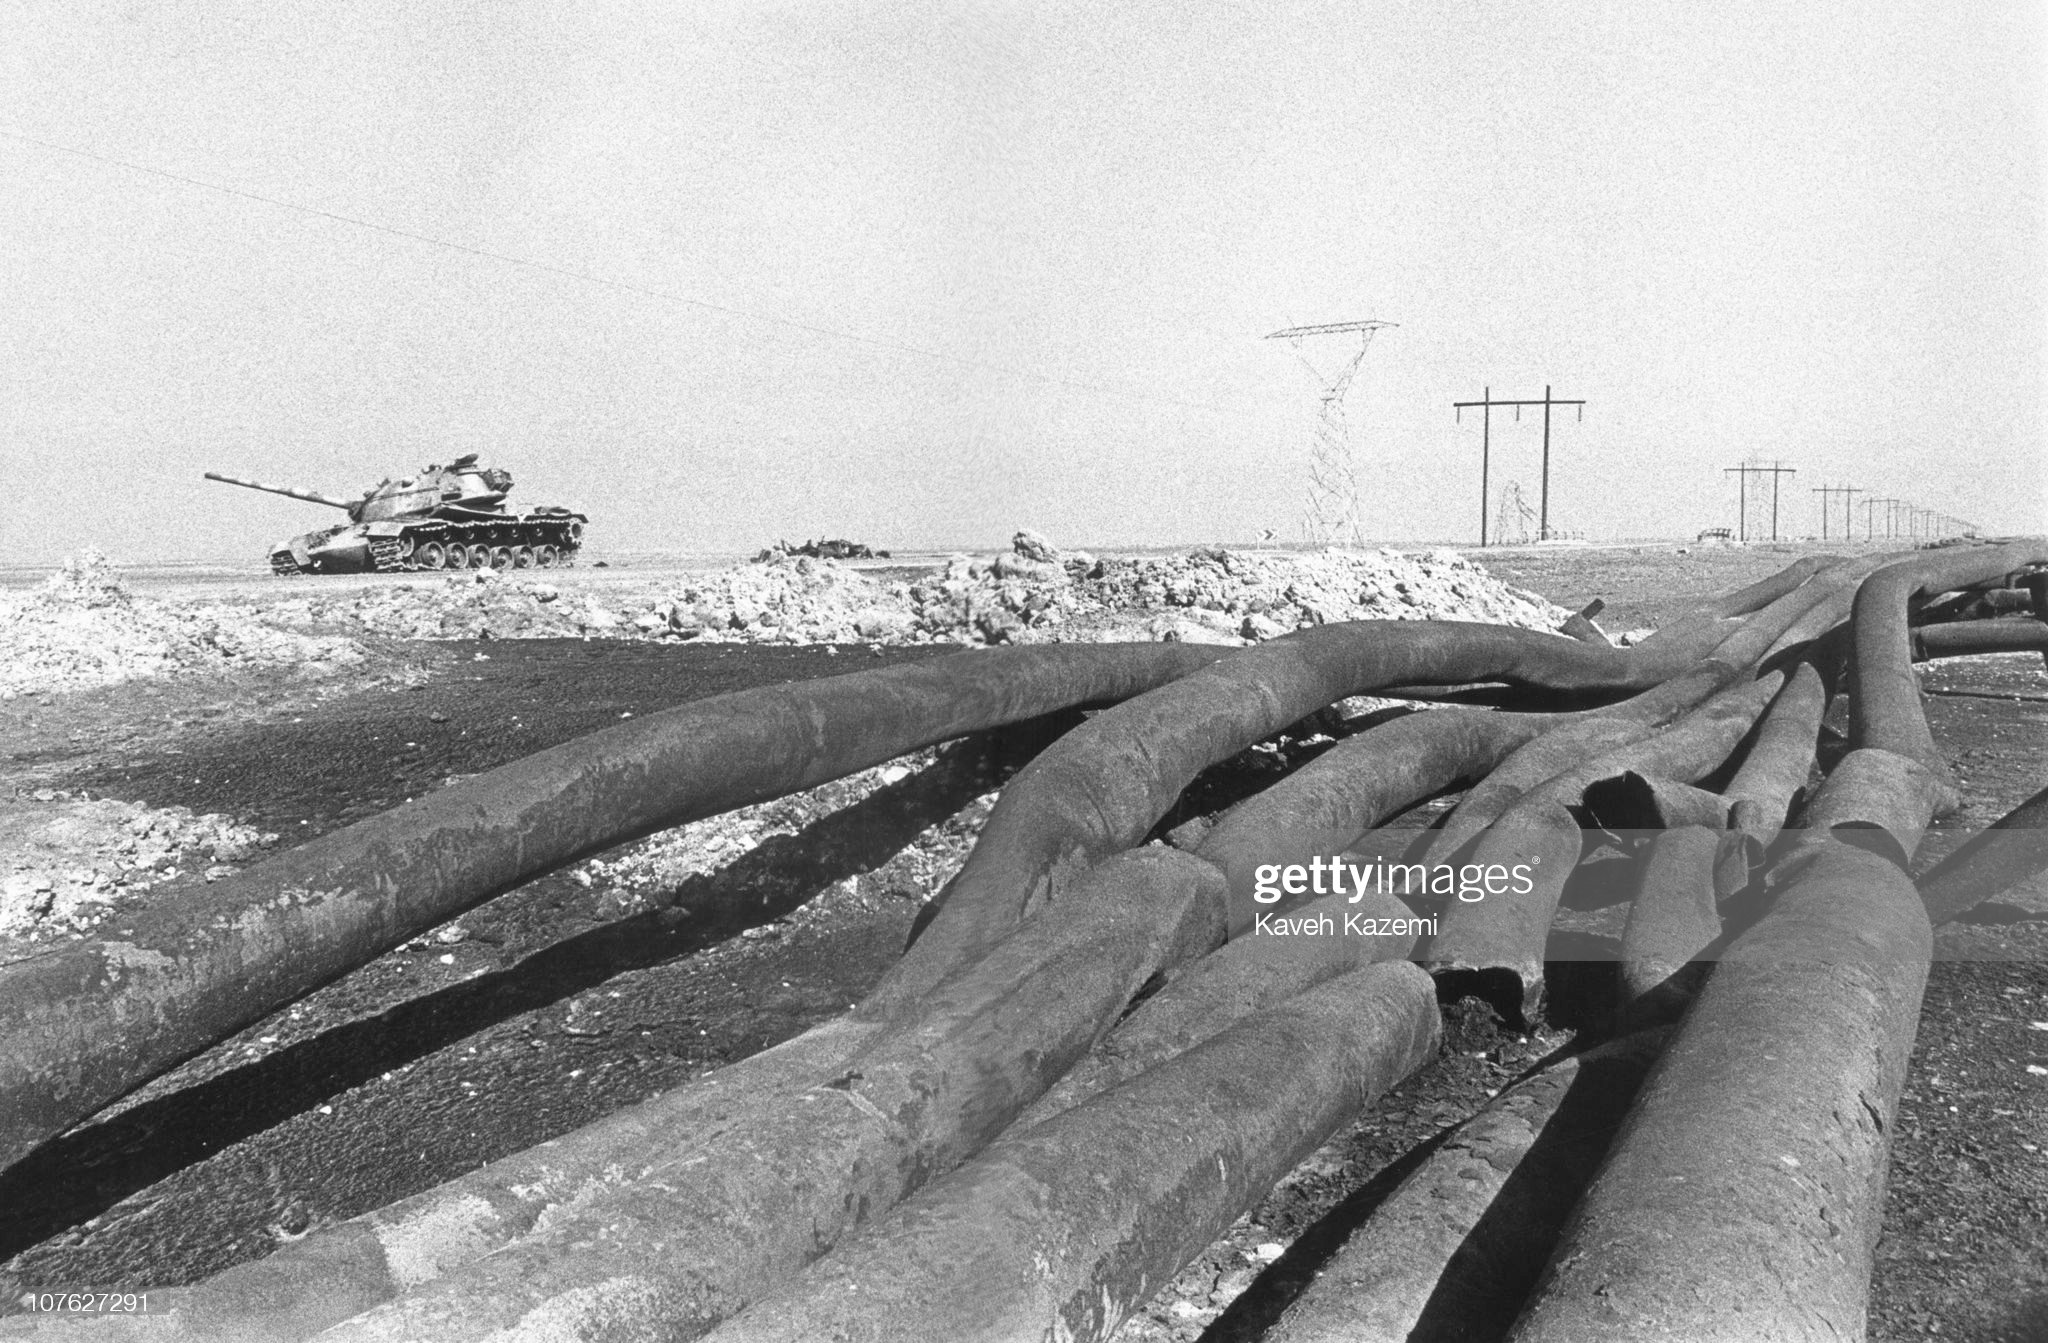 https://media.gettyimages.com/photos/abadan-iran-a-view-of-oil-pipelines-destroyed-by-iraqi-bombings-war-picture-id107627291?s=2048x2048